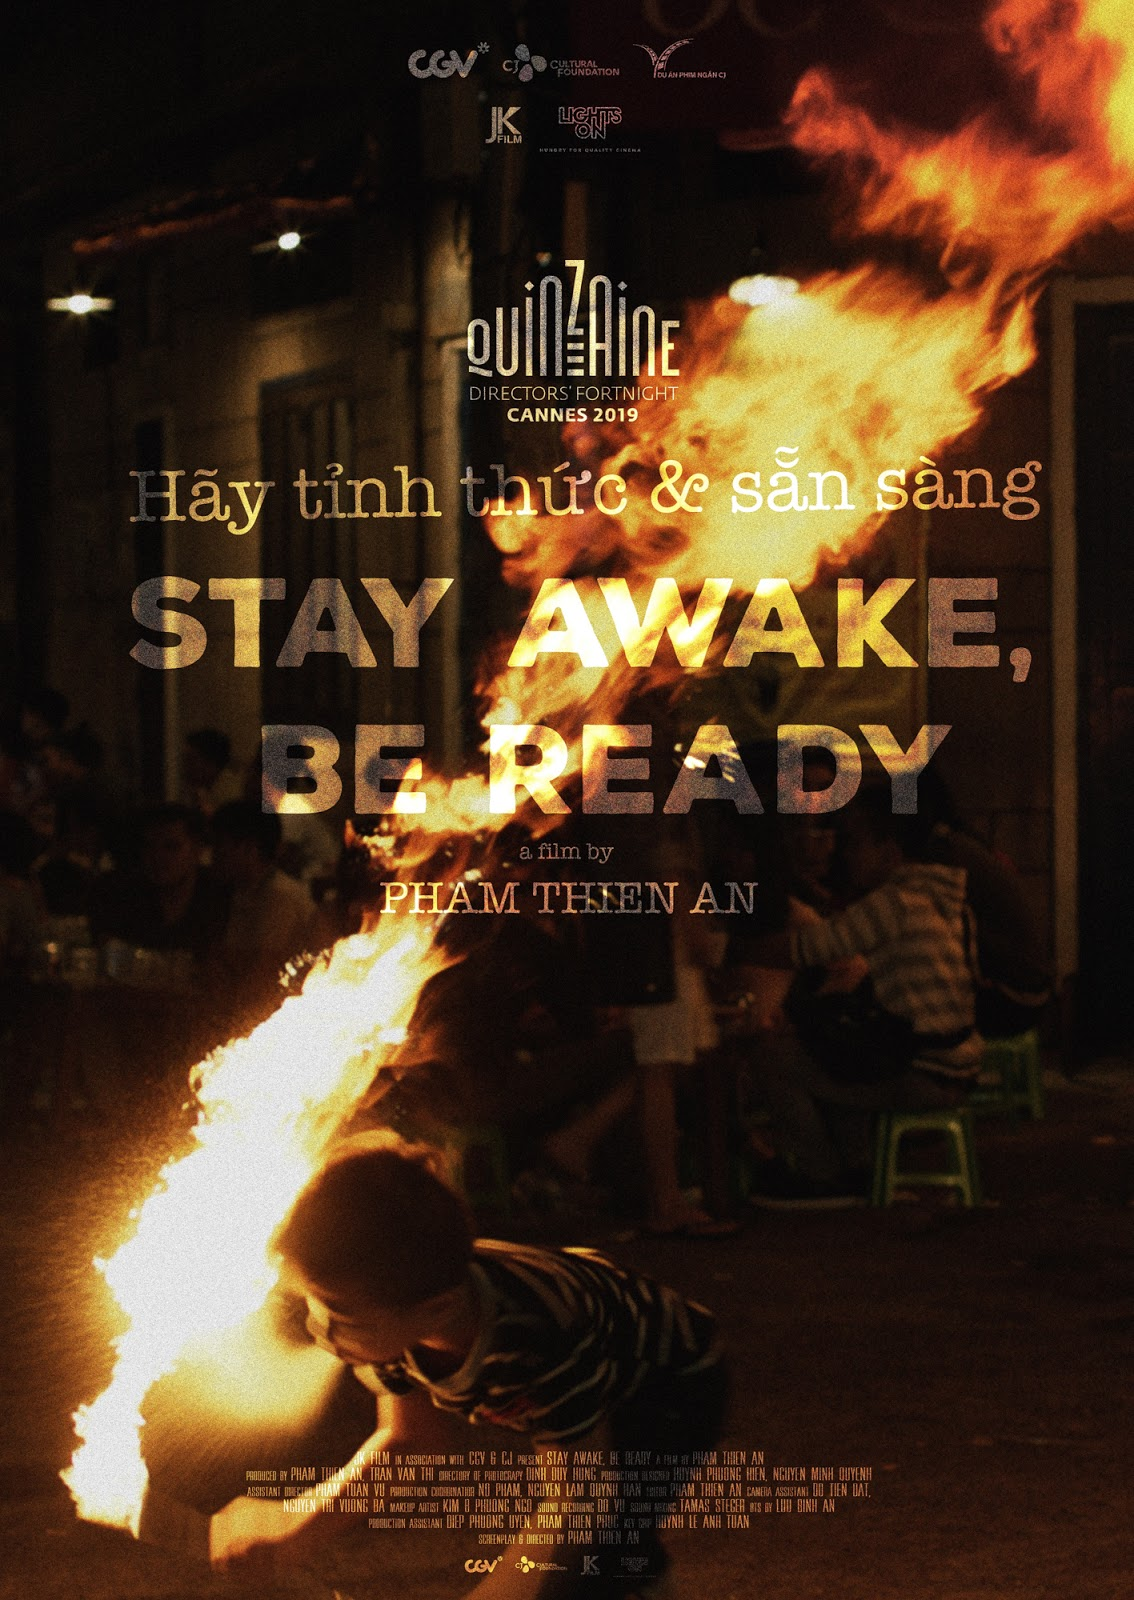 Stay Awake, Be Ready': An Interview with Pham Thien An